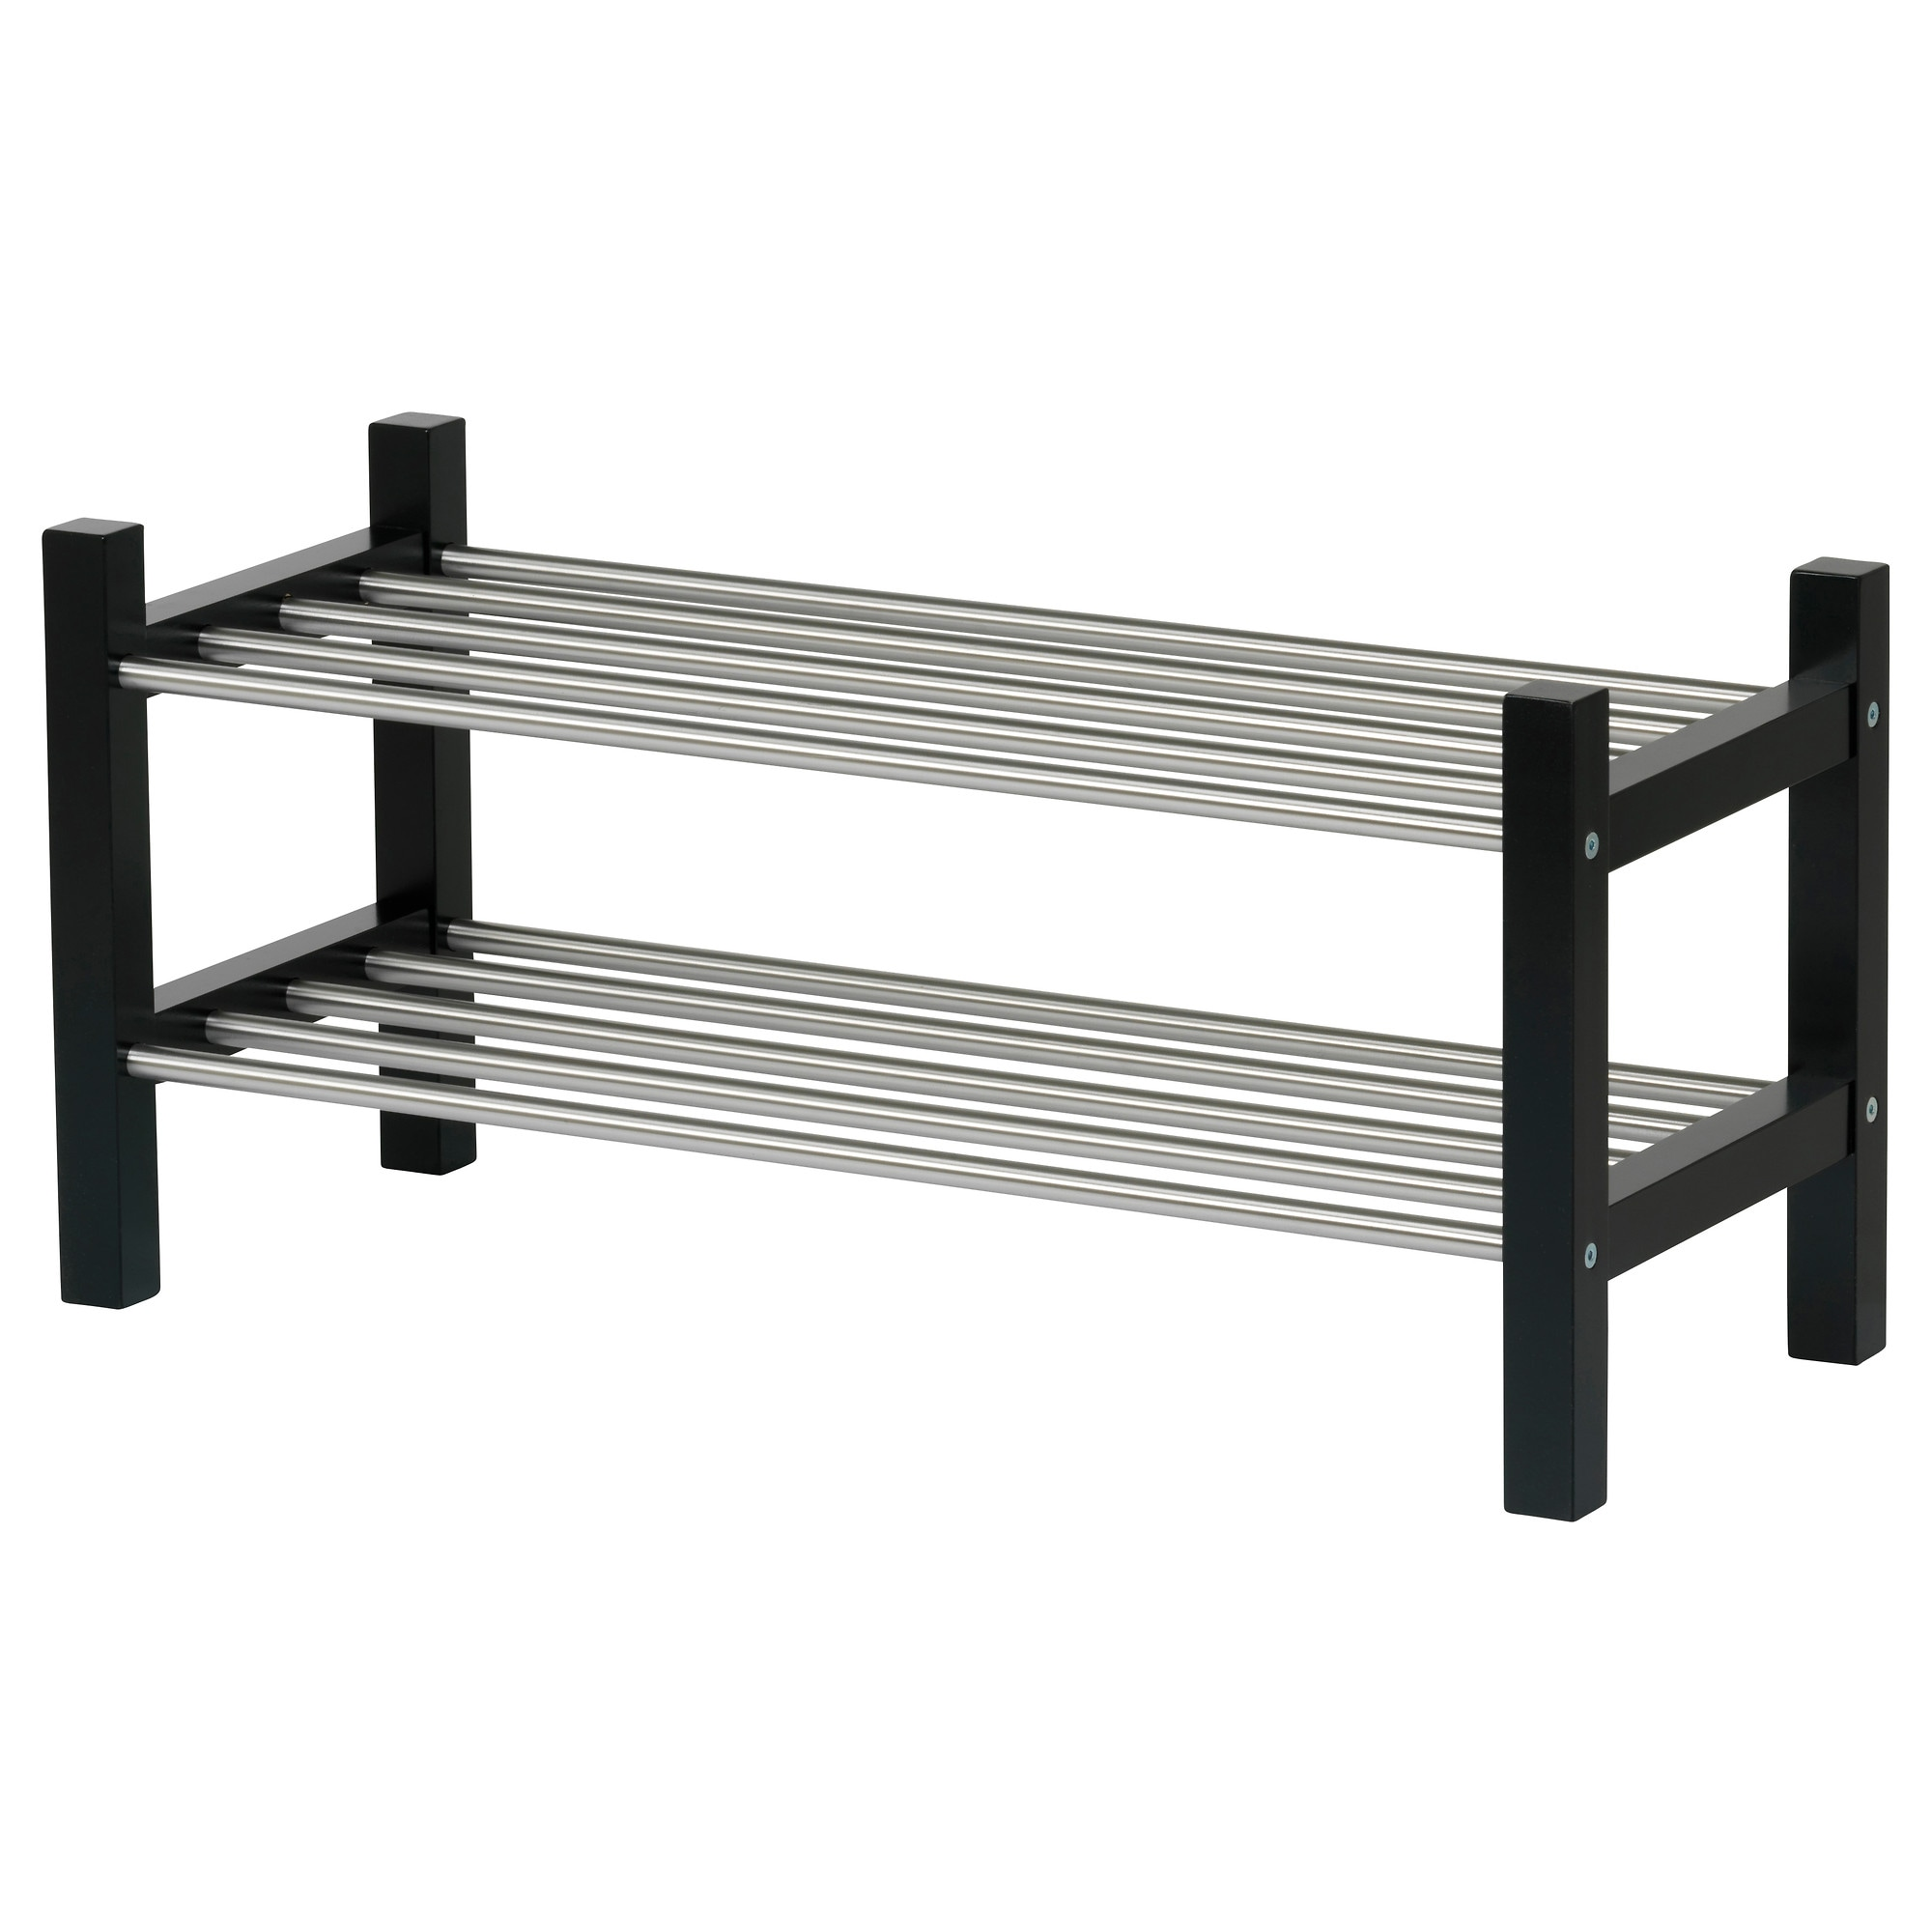 Design Ikea Shoe Racks tjusig shoe rack black ikea